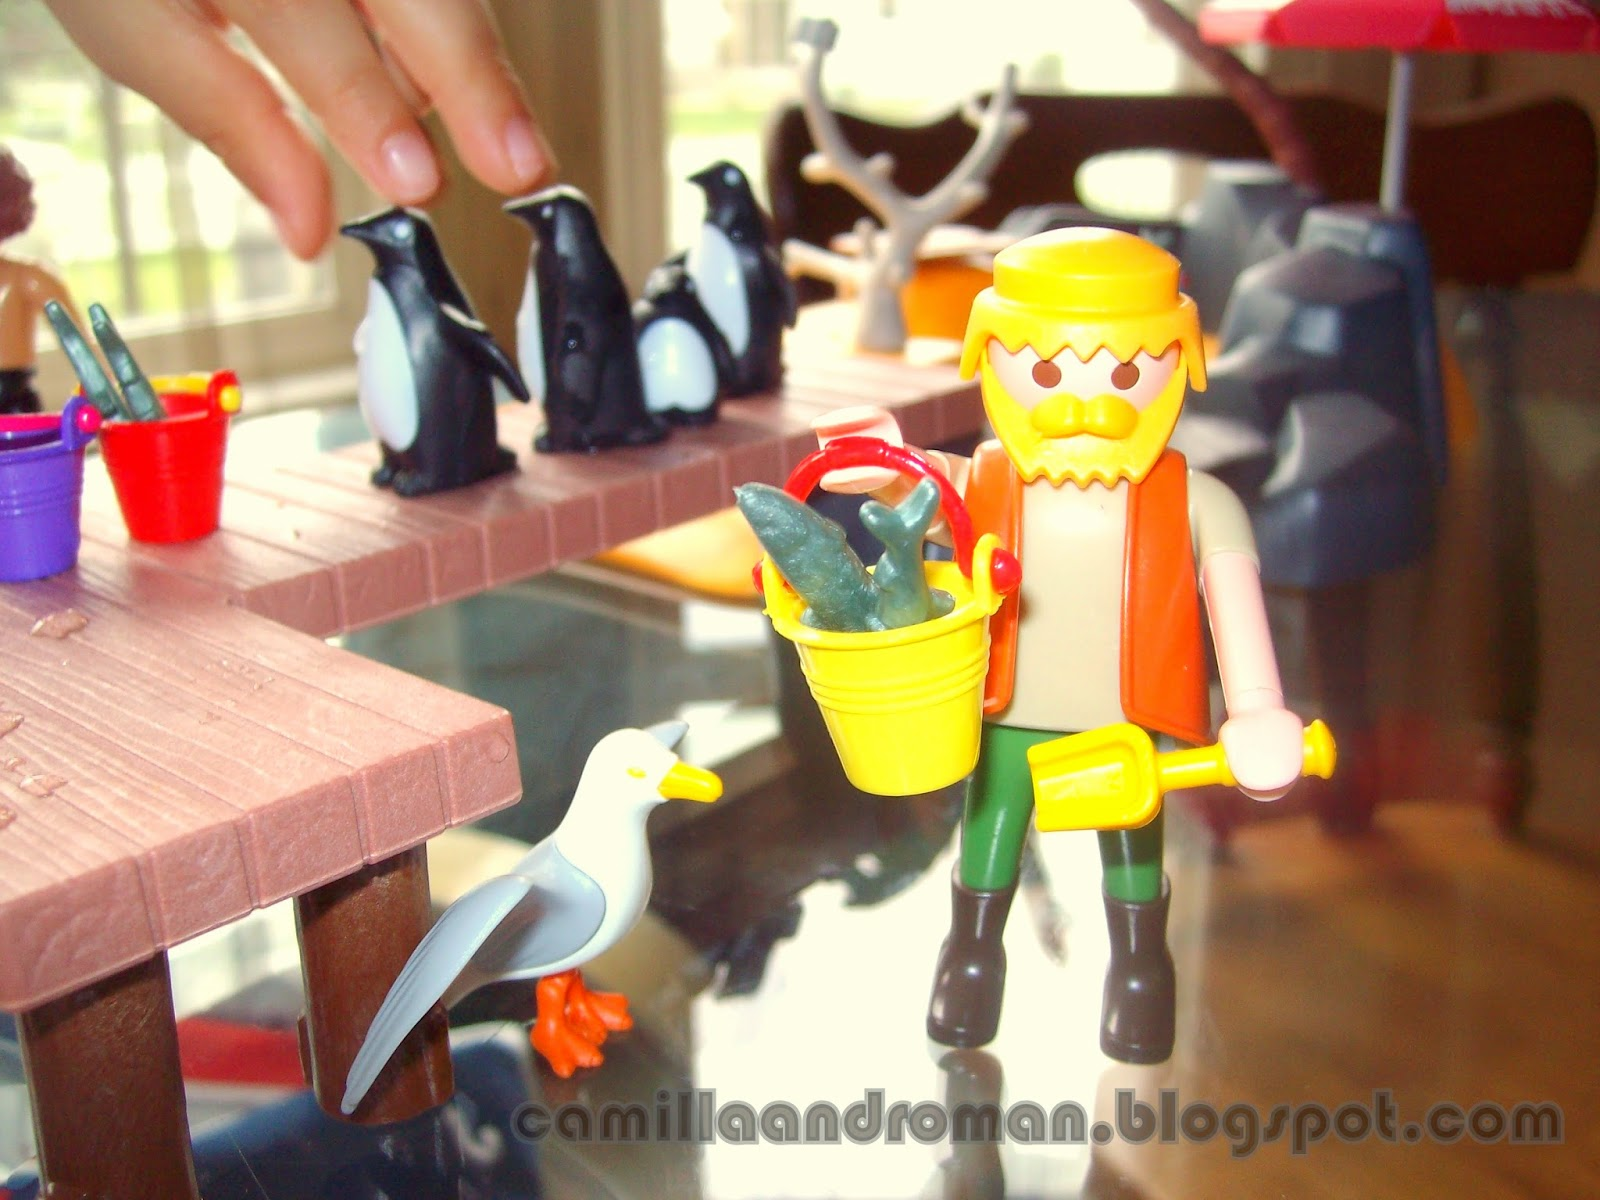 Camilla and Roman German Engineering Playmobil